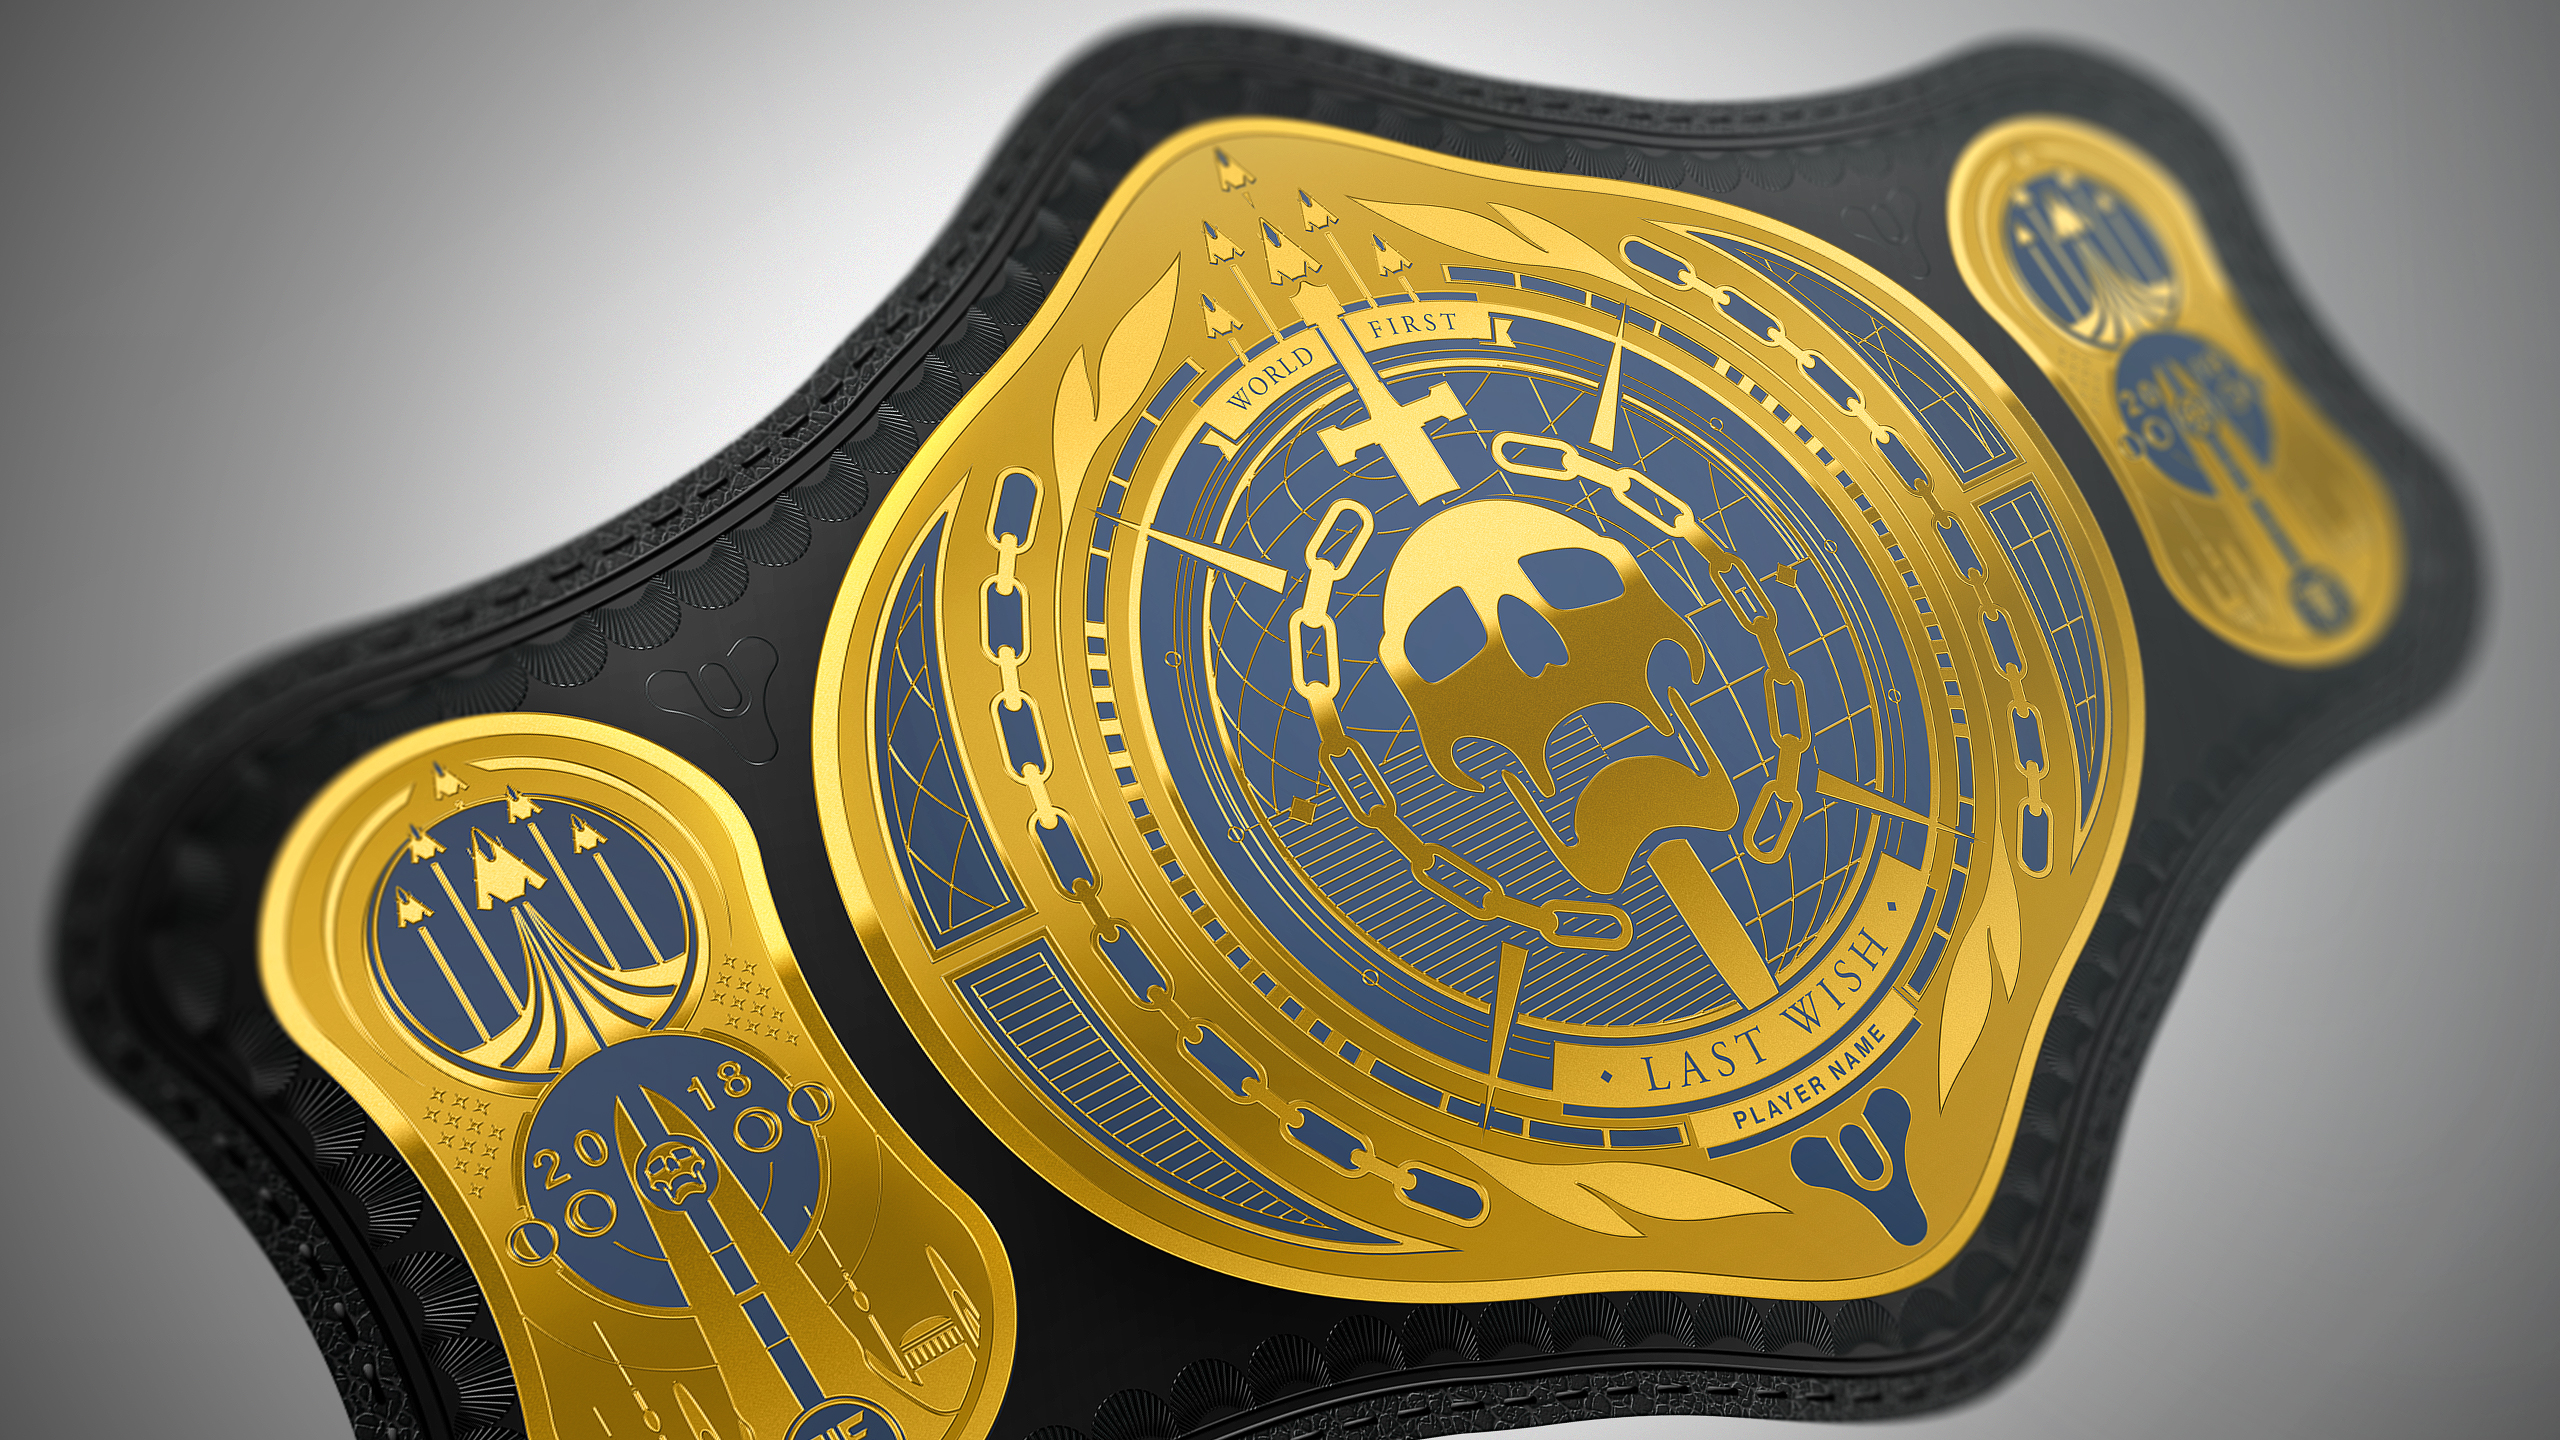 World First Title Belt